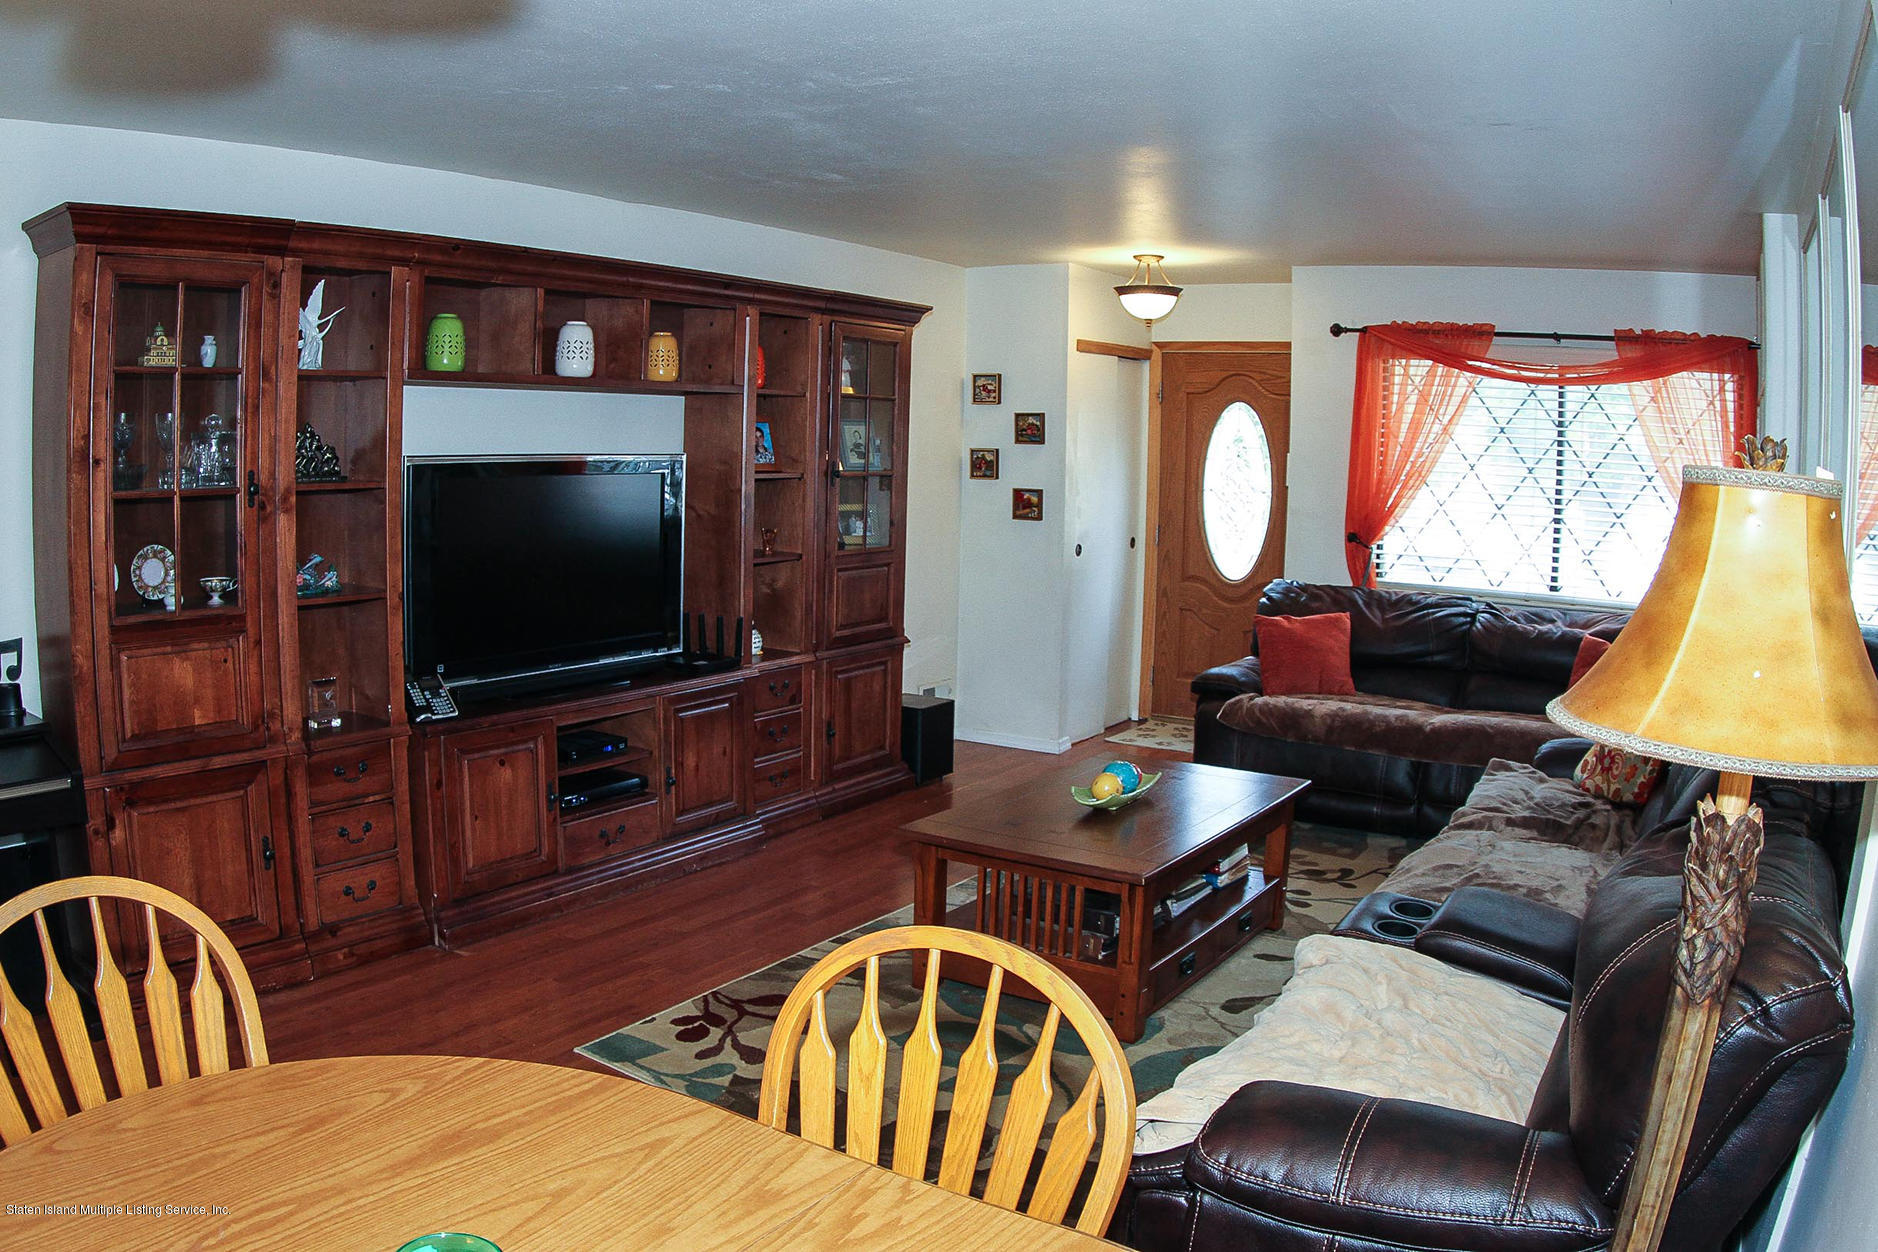 Single Family - Semi-Attached 972 Rensselaer Avenue  Staten Island, NY 10309, MLS-1134144-9